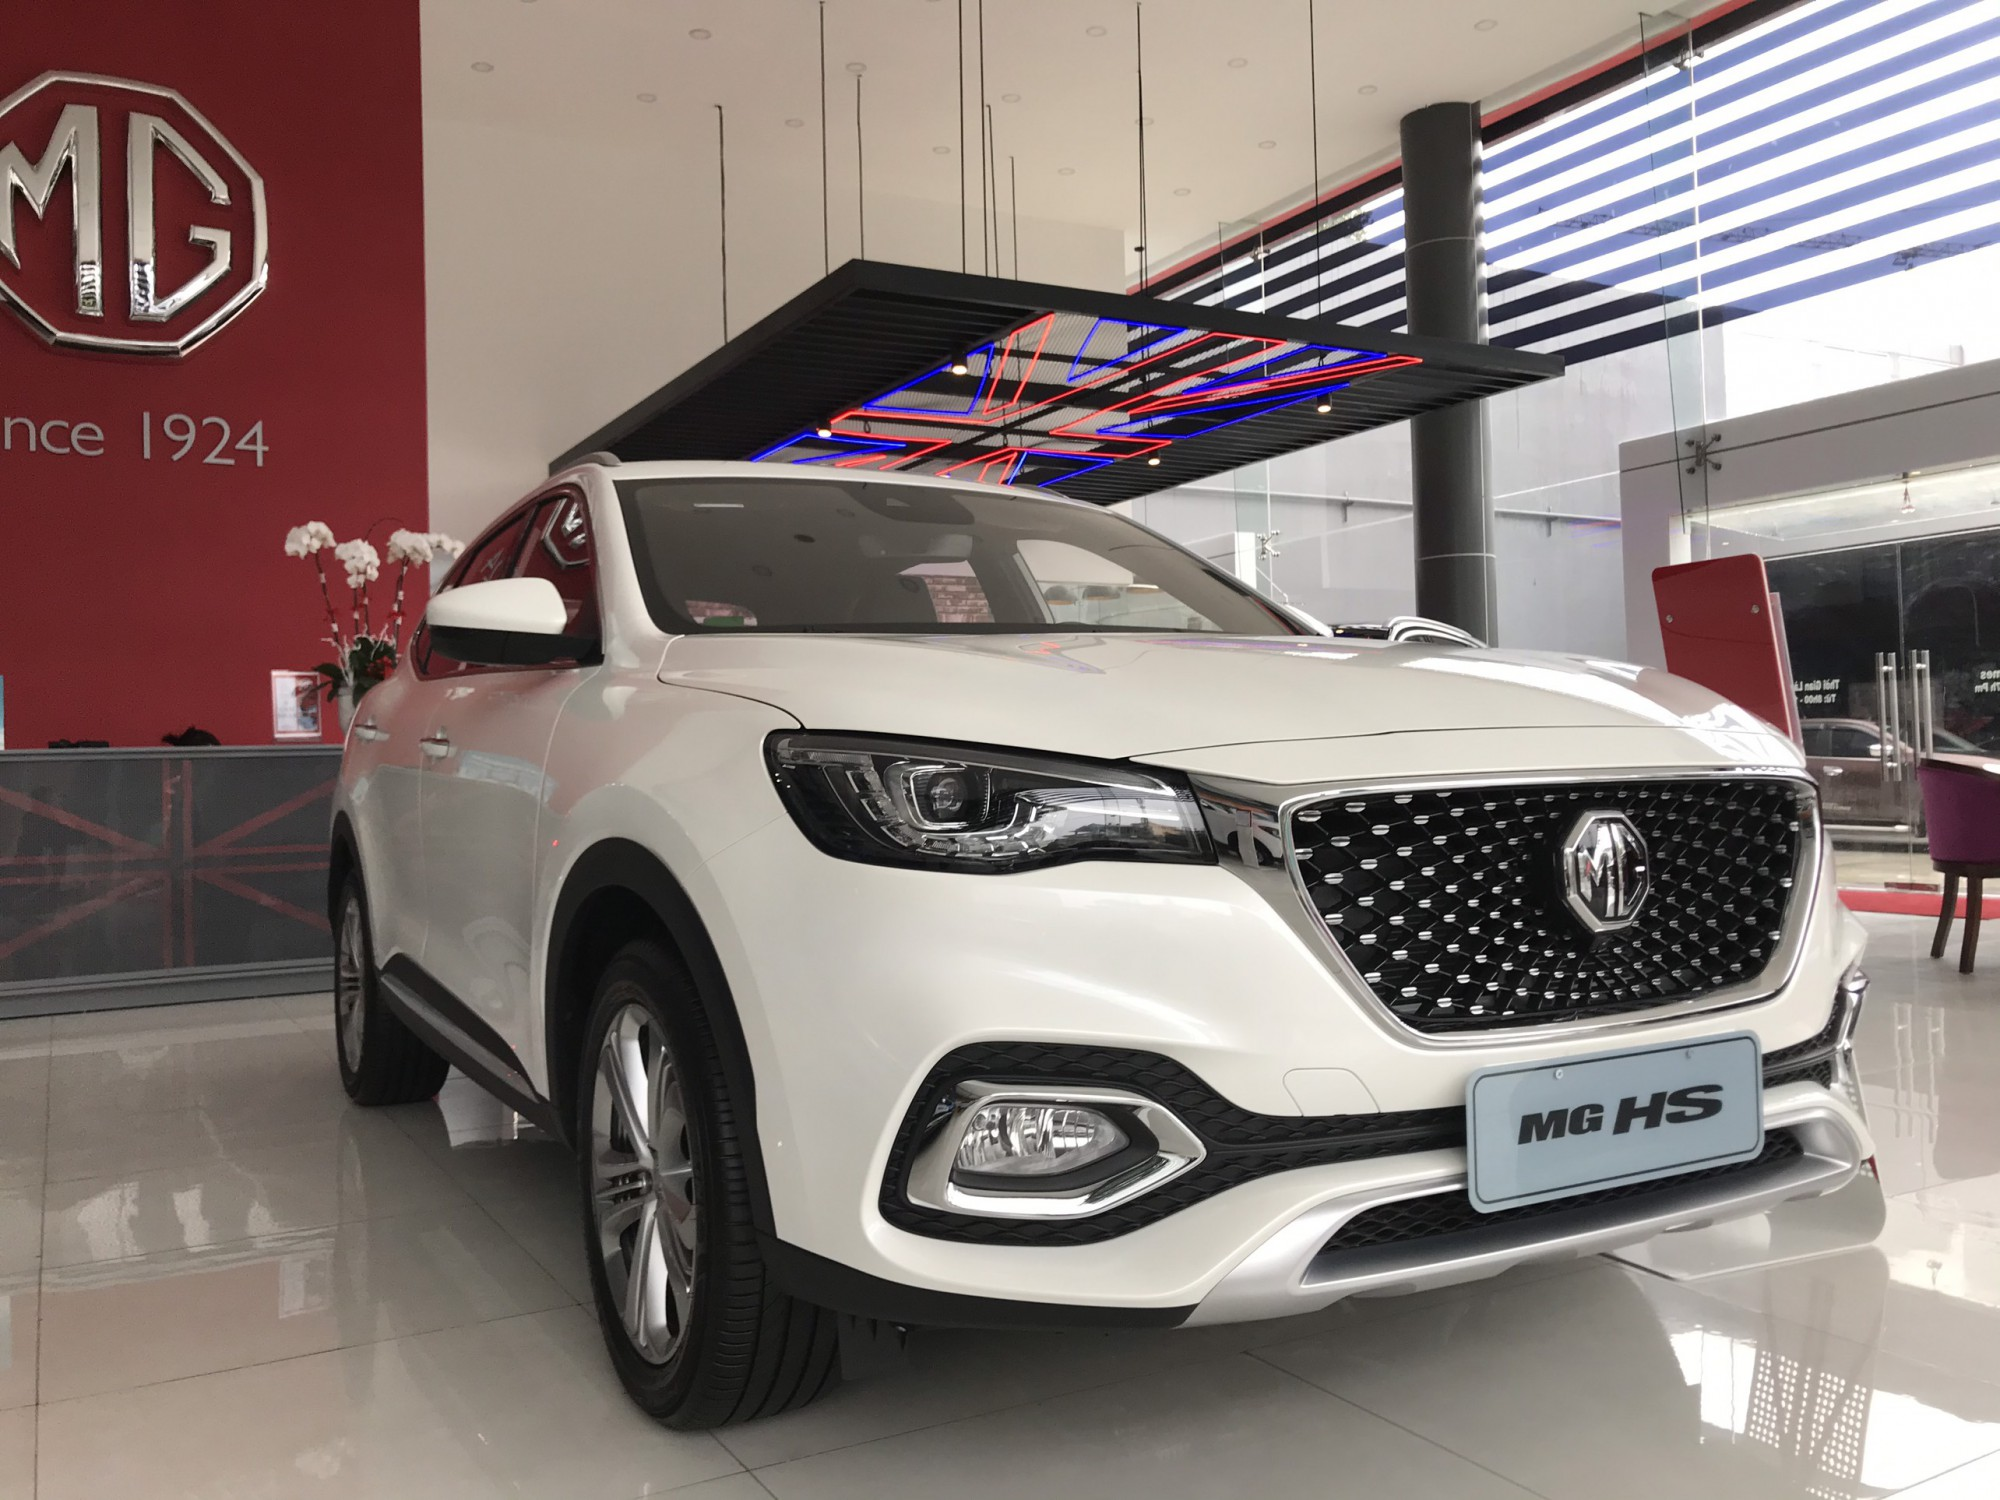 chi-tiet-xe-mg-hs-2-0t-trophy-2021-giaxehoi-vn-12